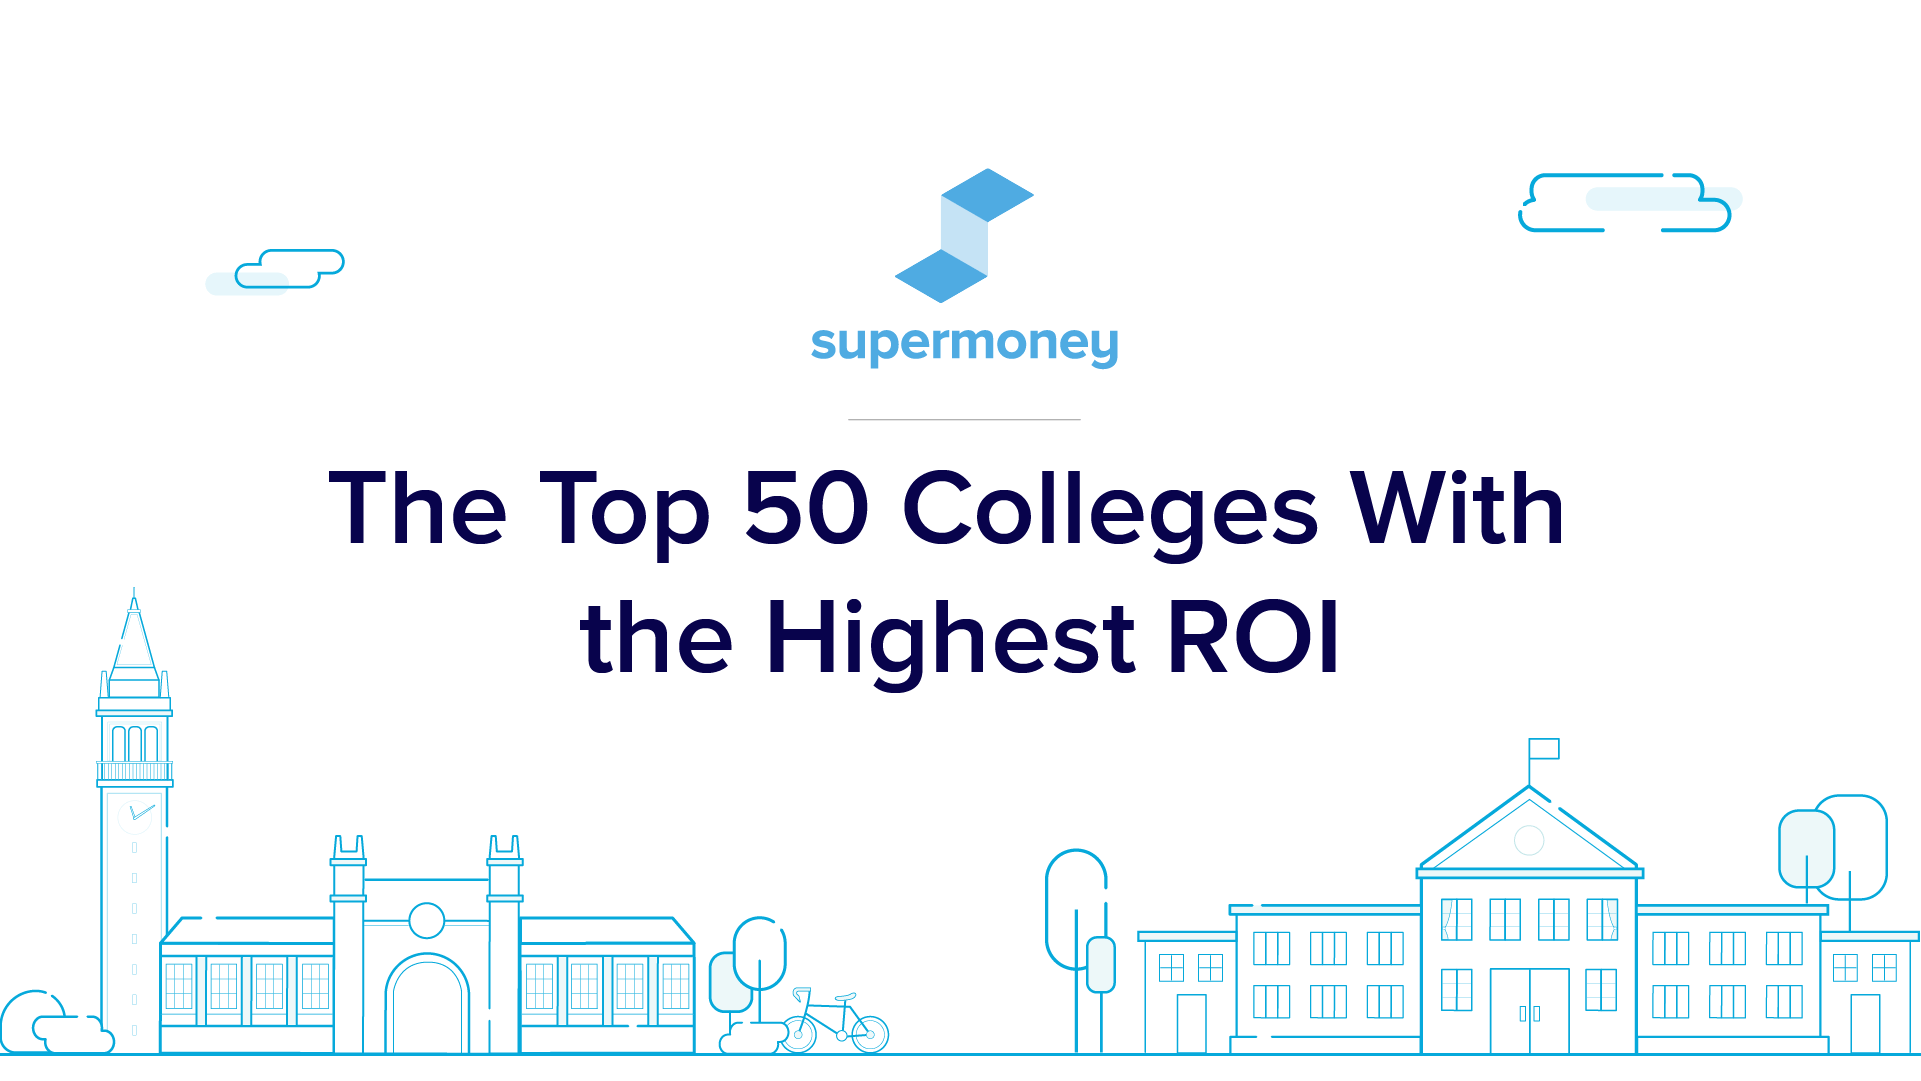 Top 50 colleges by ROI